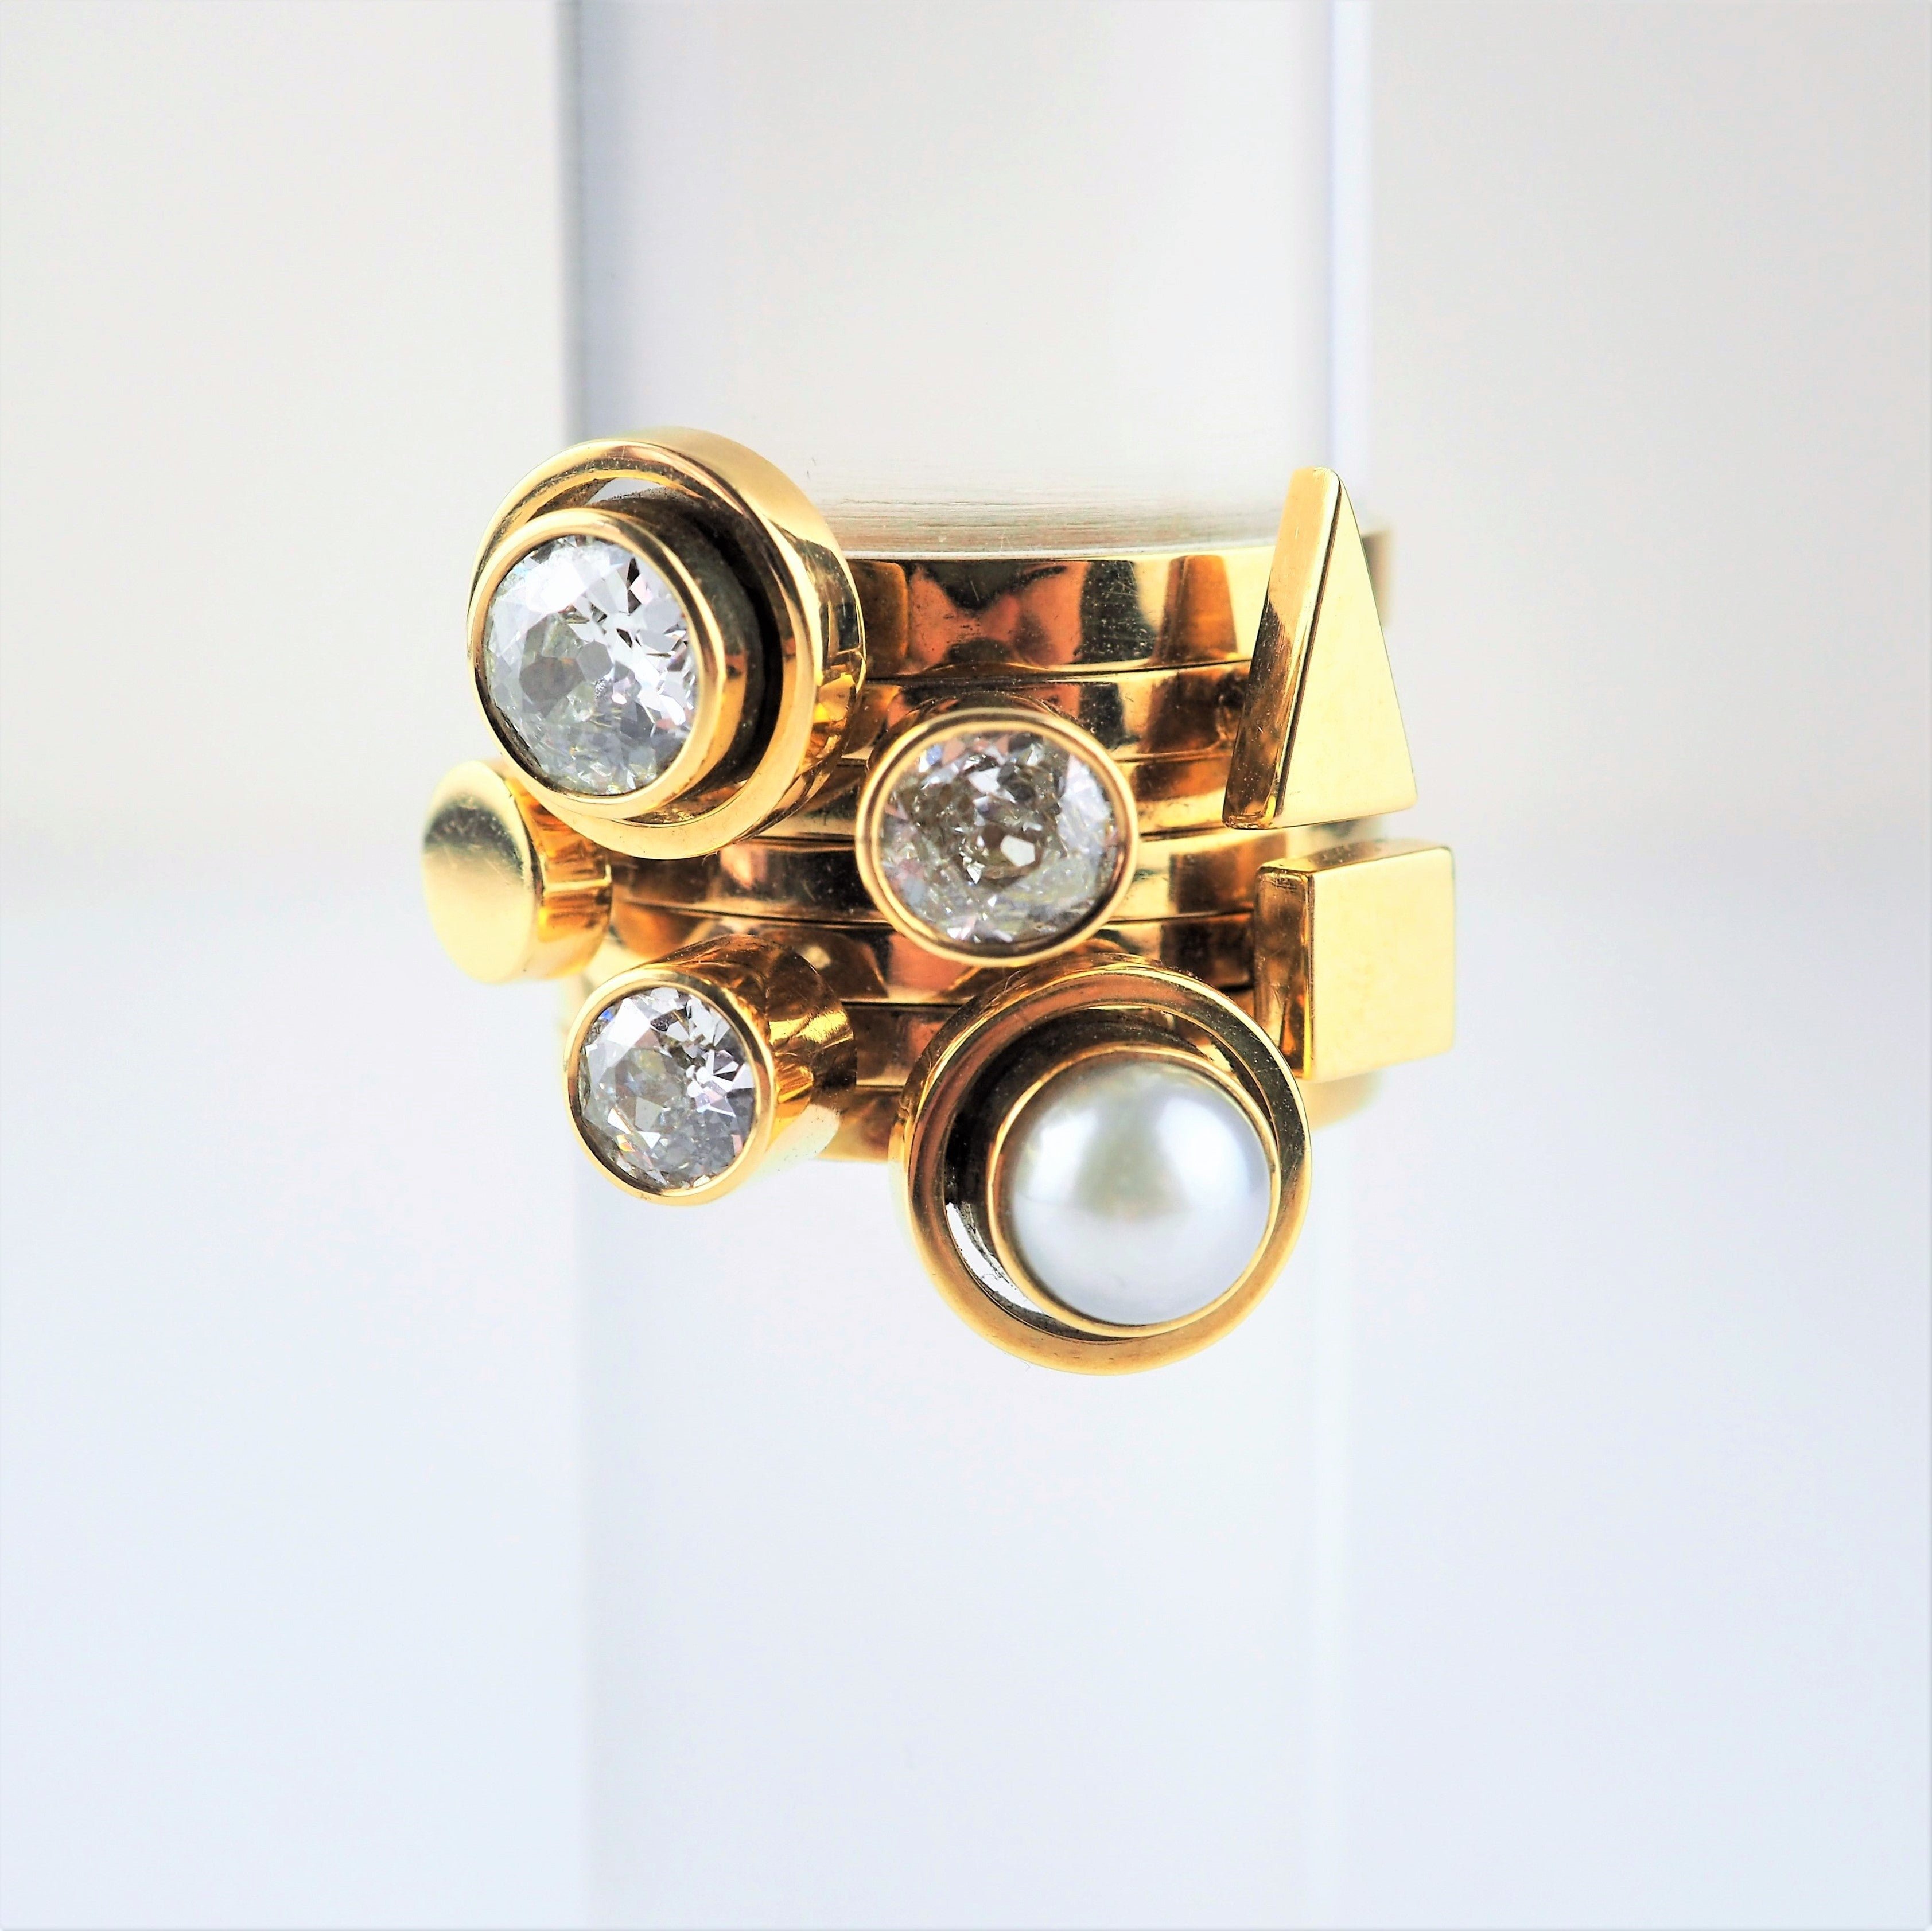 Ramshaw, Wendy – Gold Diamond Pearl Ring Set | Wendy Ramshaw | Primavera Gallery